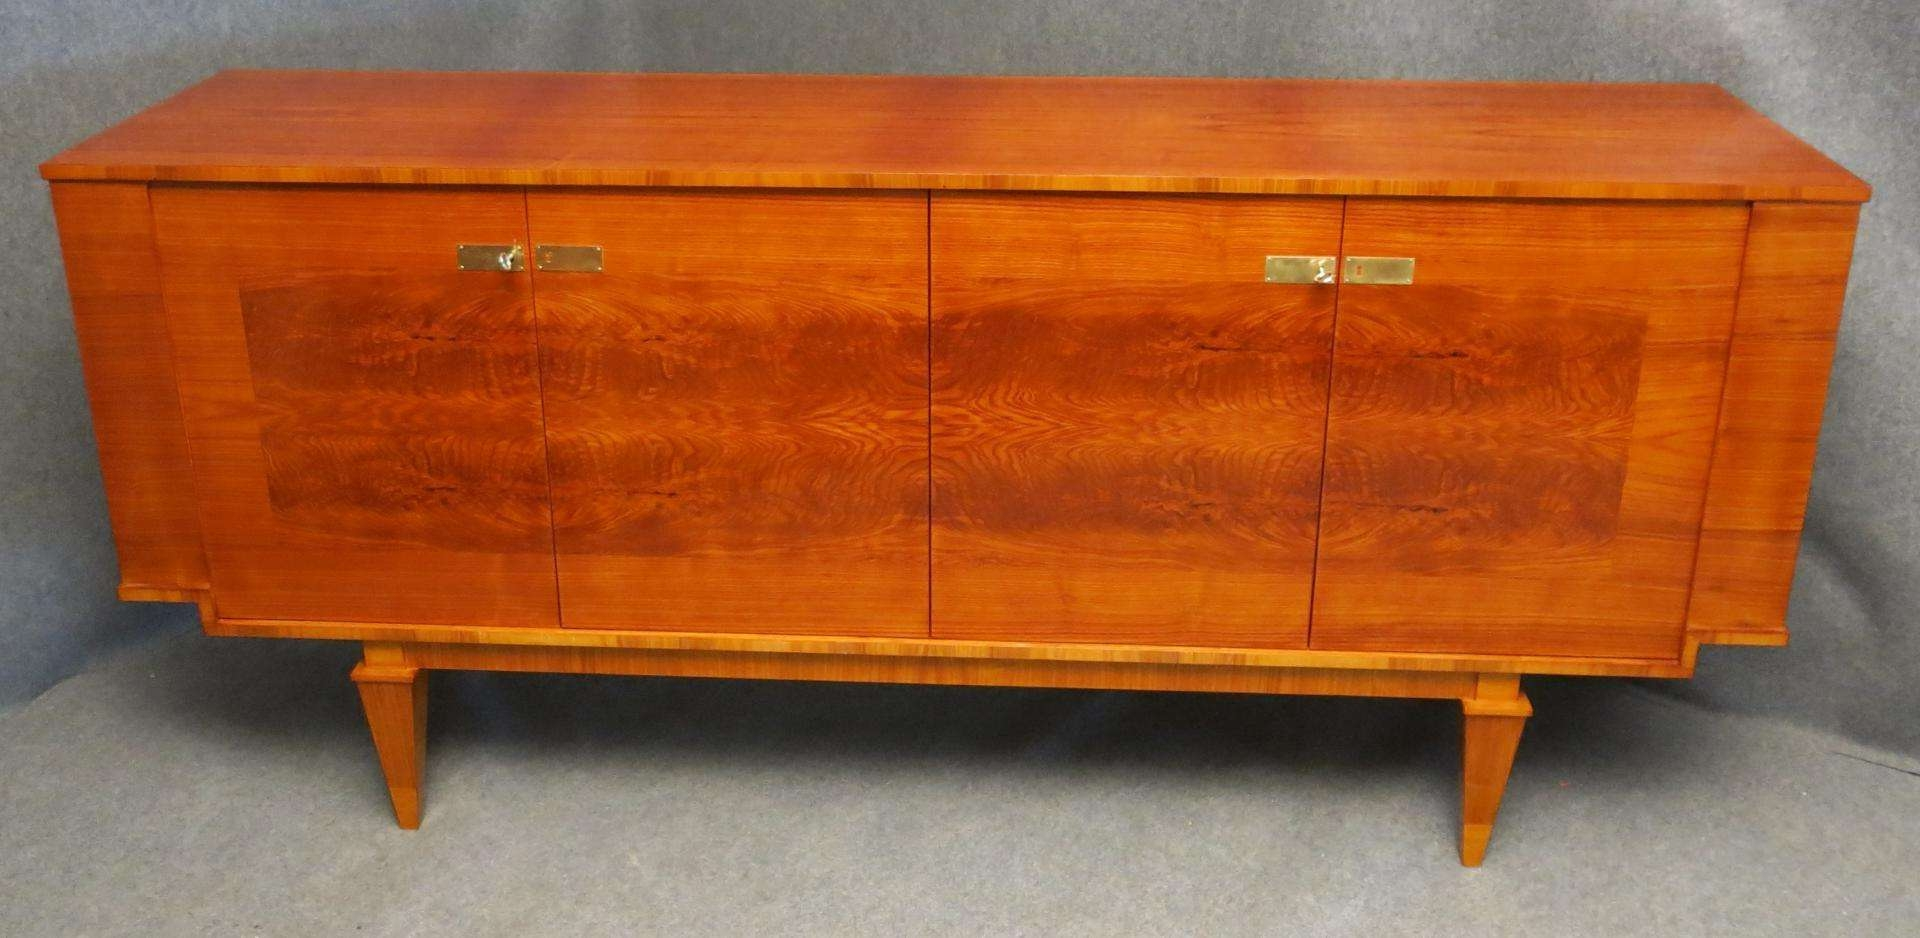 French Art Deco Sideboard, 1920s For Sale At Pamono Regarding Joop Sideboards (View 9 of 20)